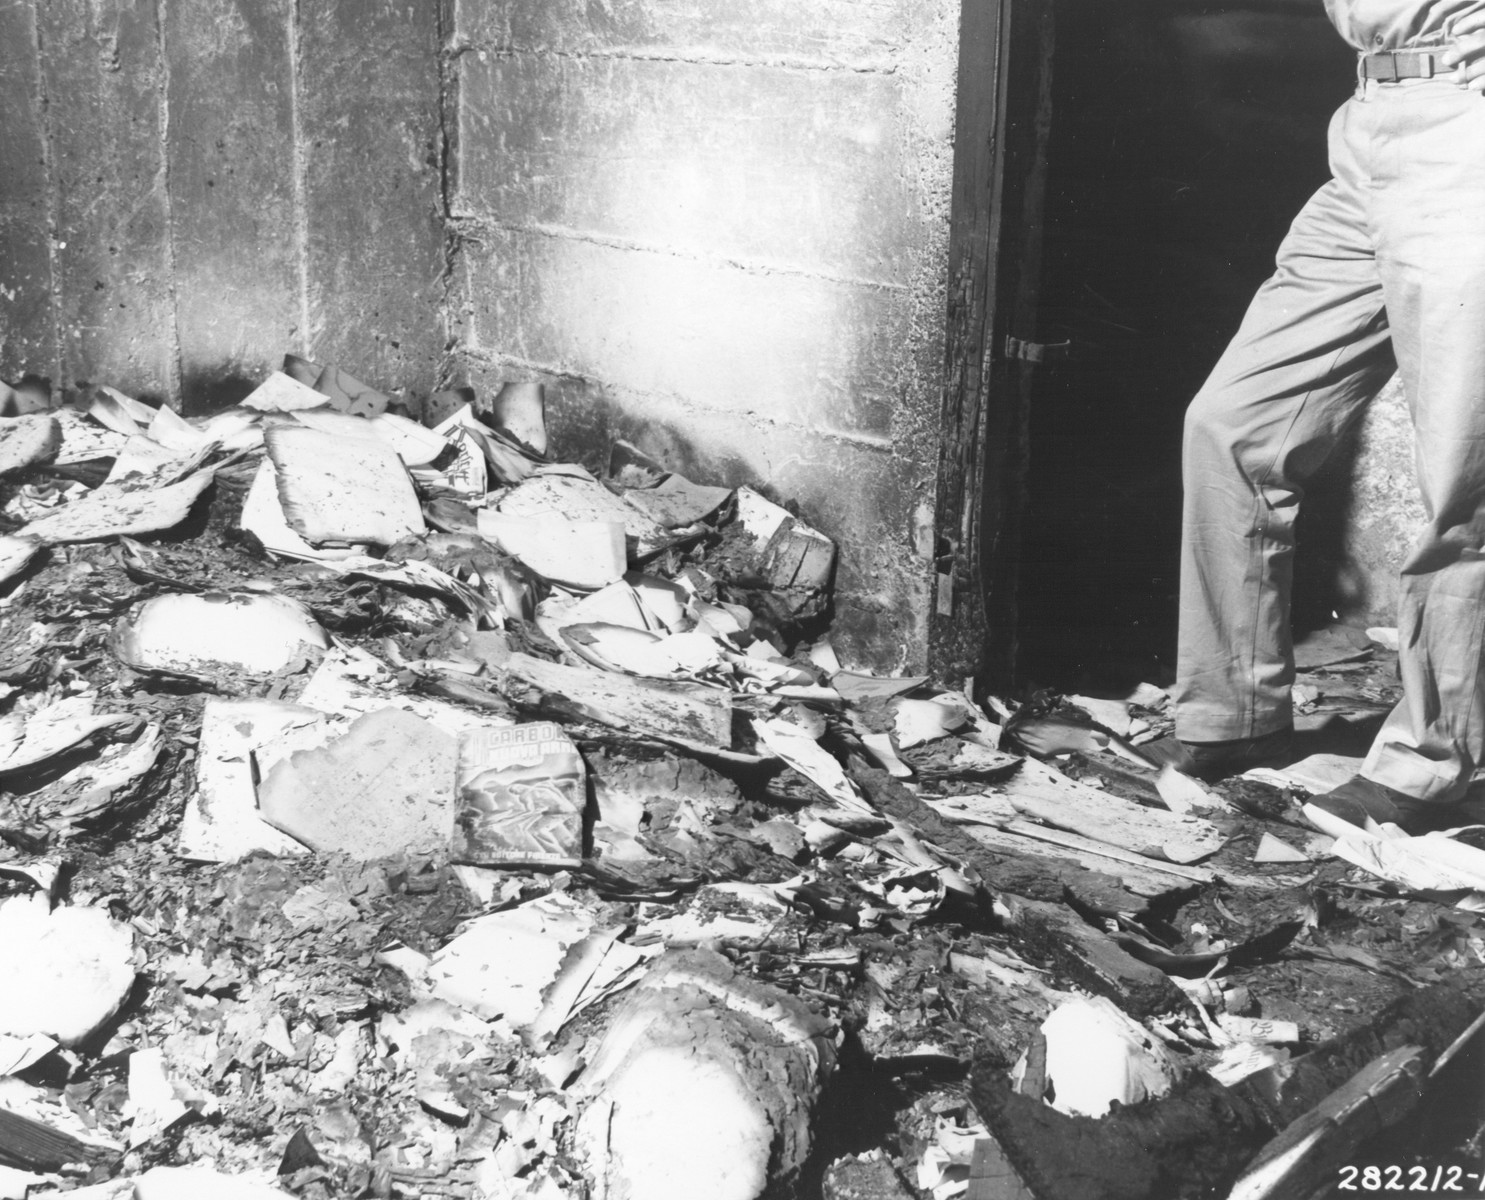 Documents, pamphlets, and books burnt by the Gestapo in the basement of the former Gestapo headquarters, located in a building on Via Tasso.